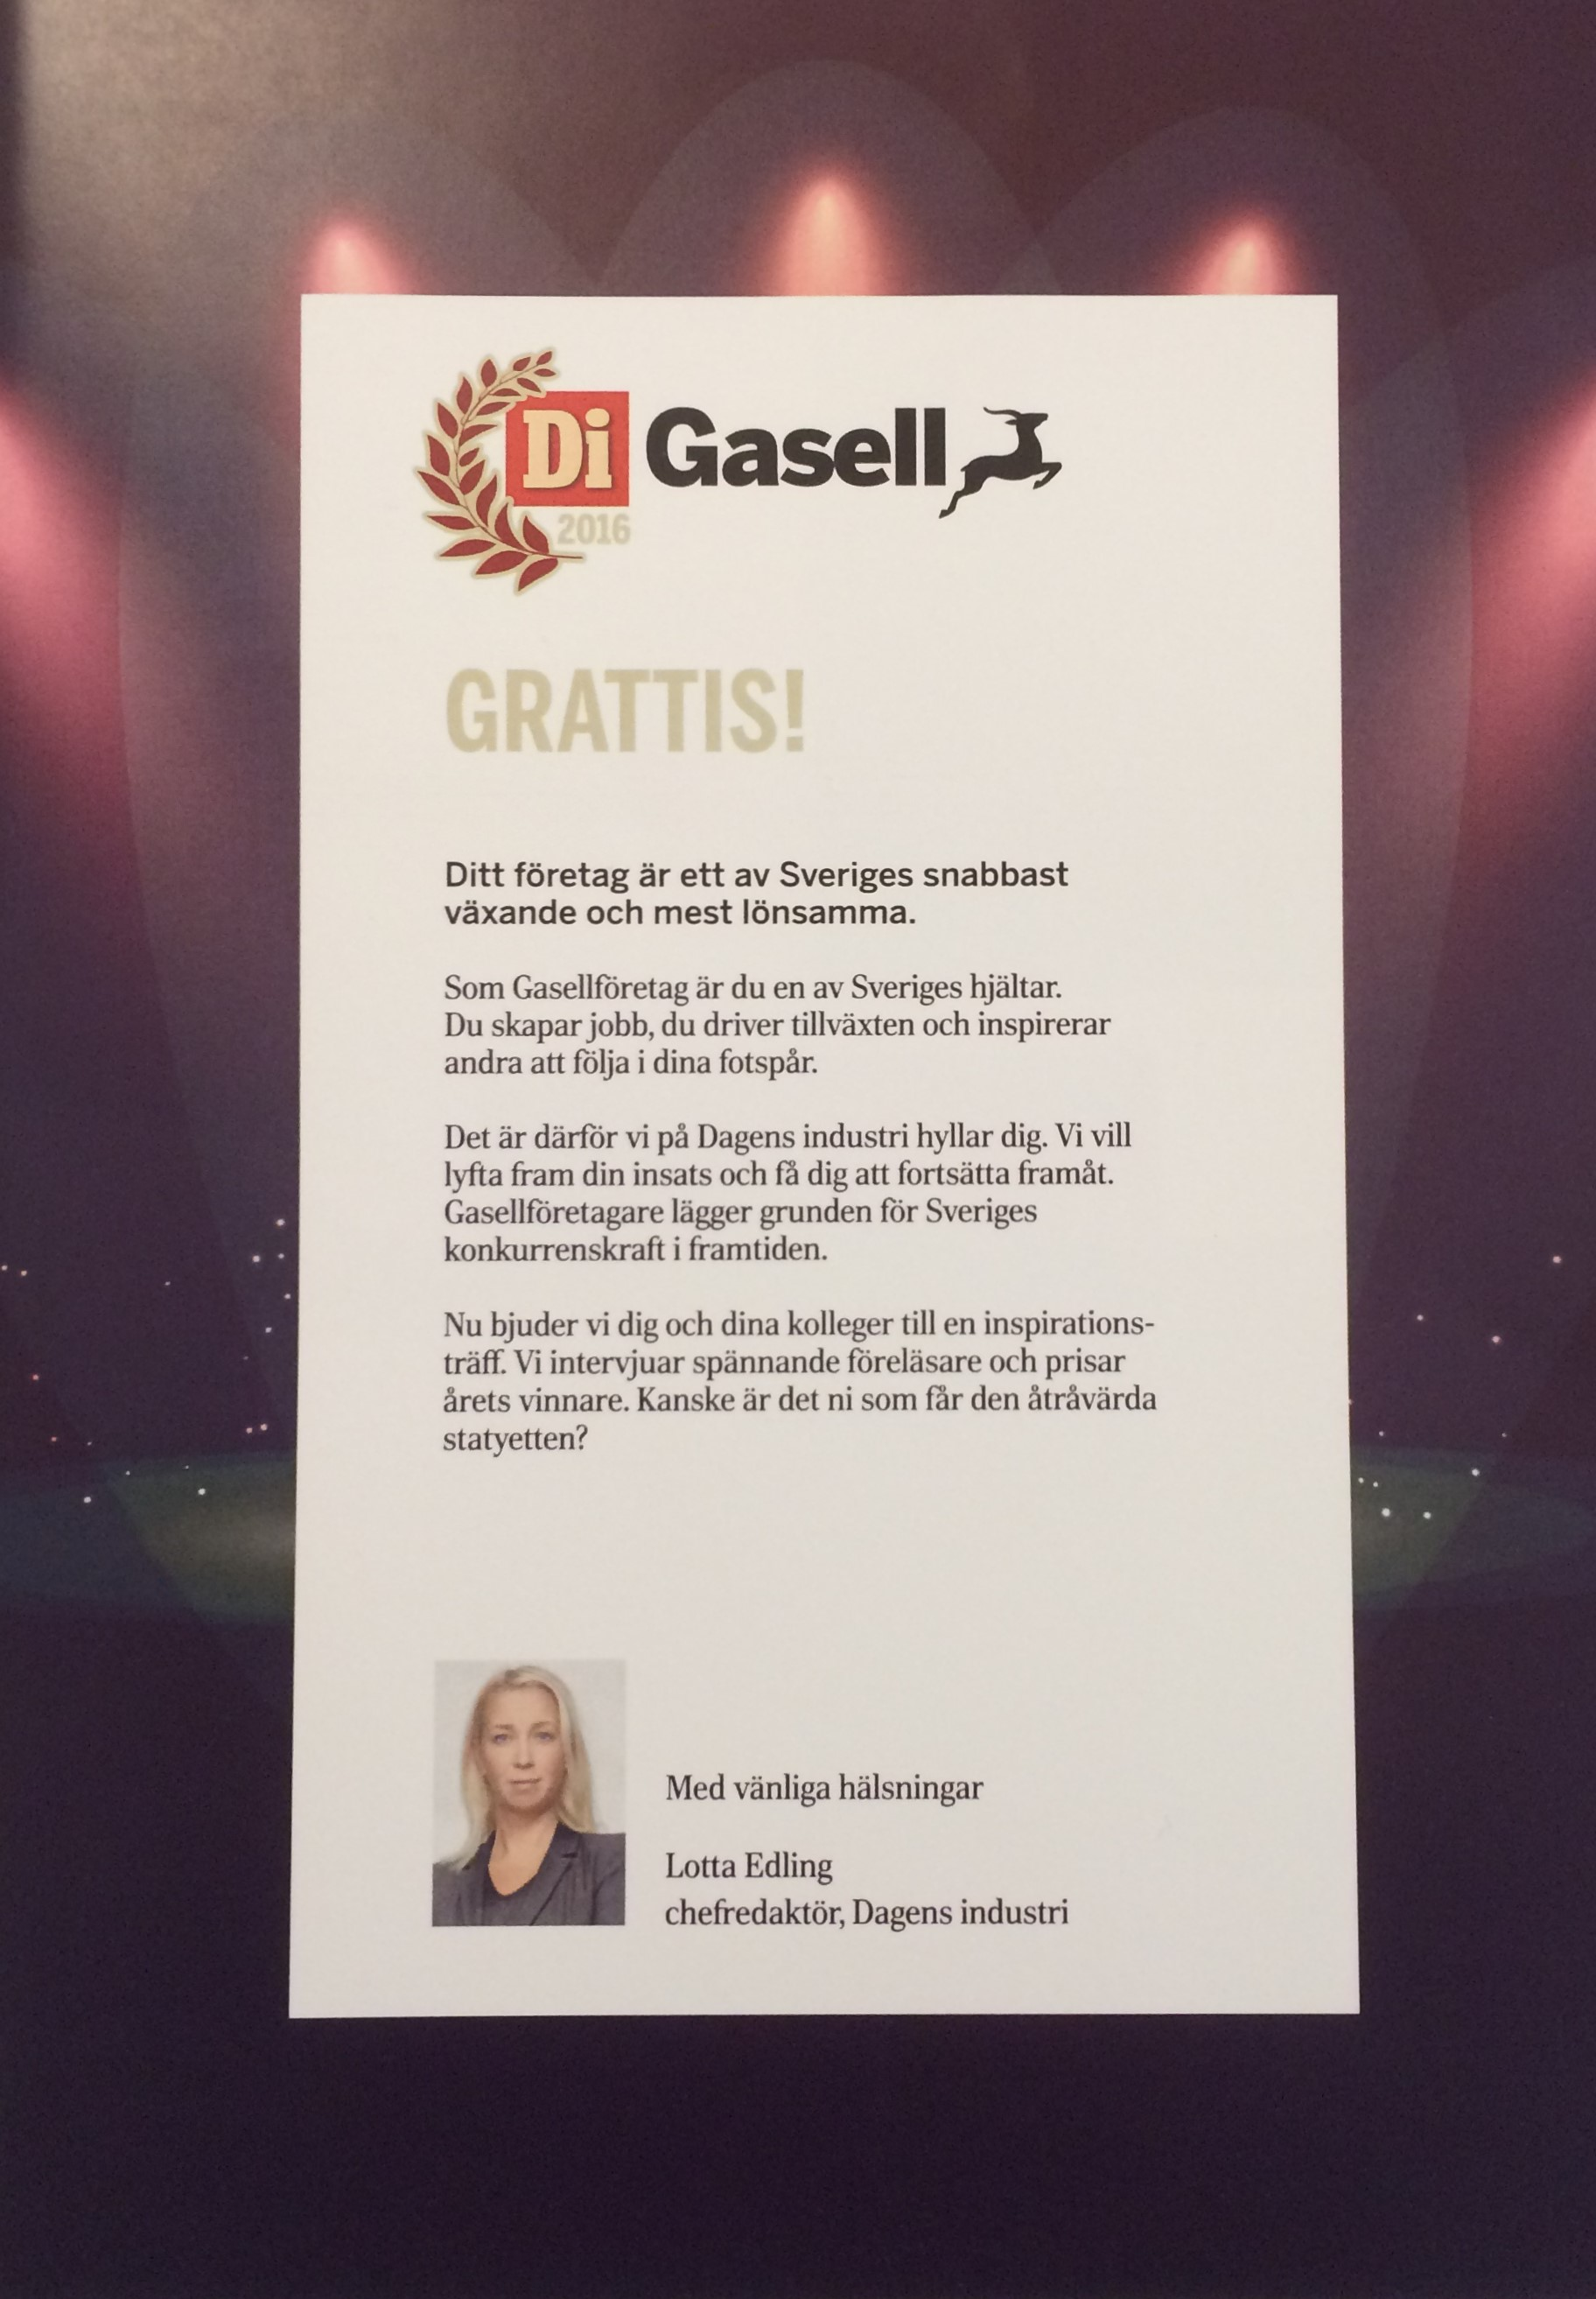 gasell2016